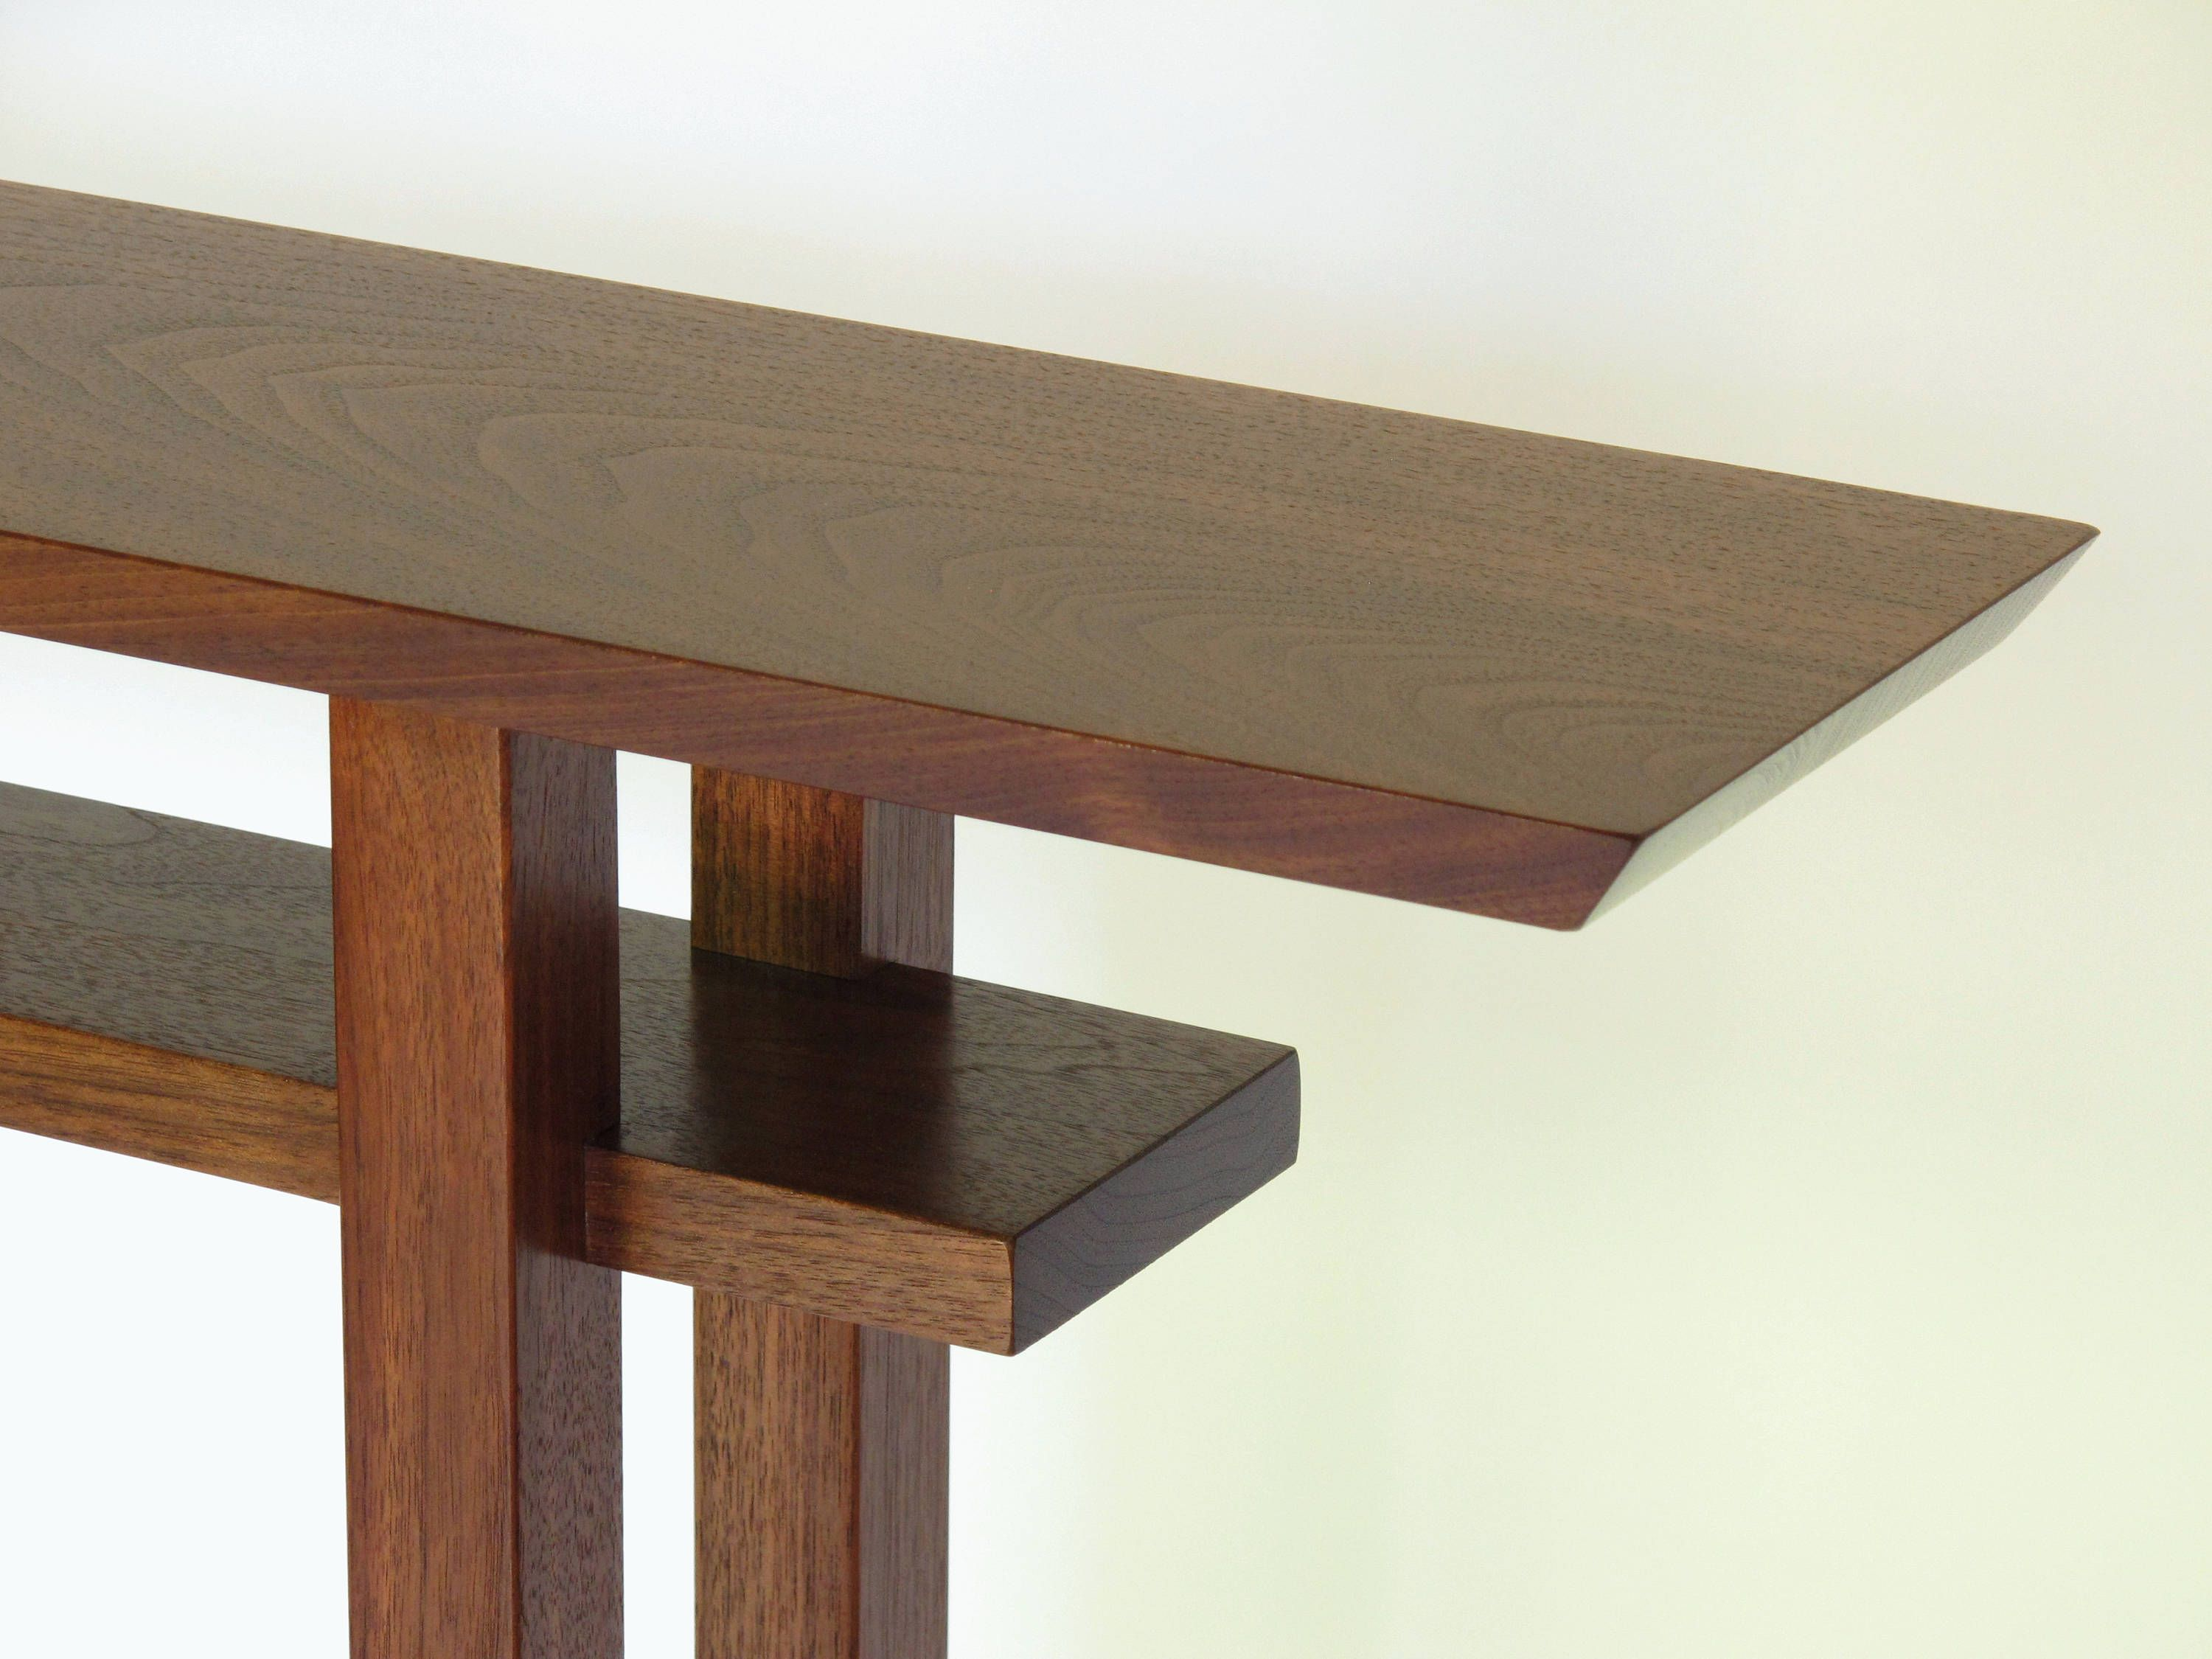 Excellent Very Narrow Console Table For Small Spaces Hall Table Machost Co Dining Chair Design Ideas Machostcouk